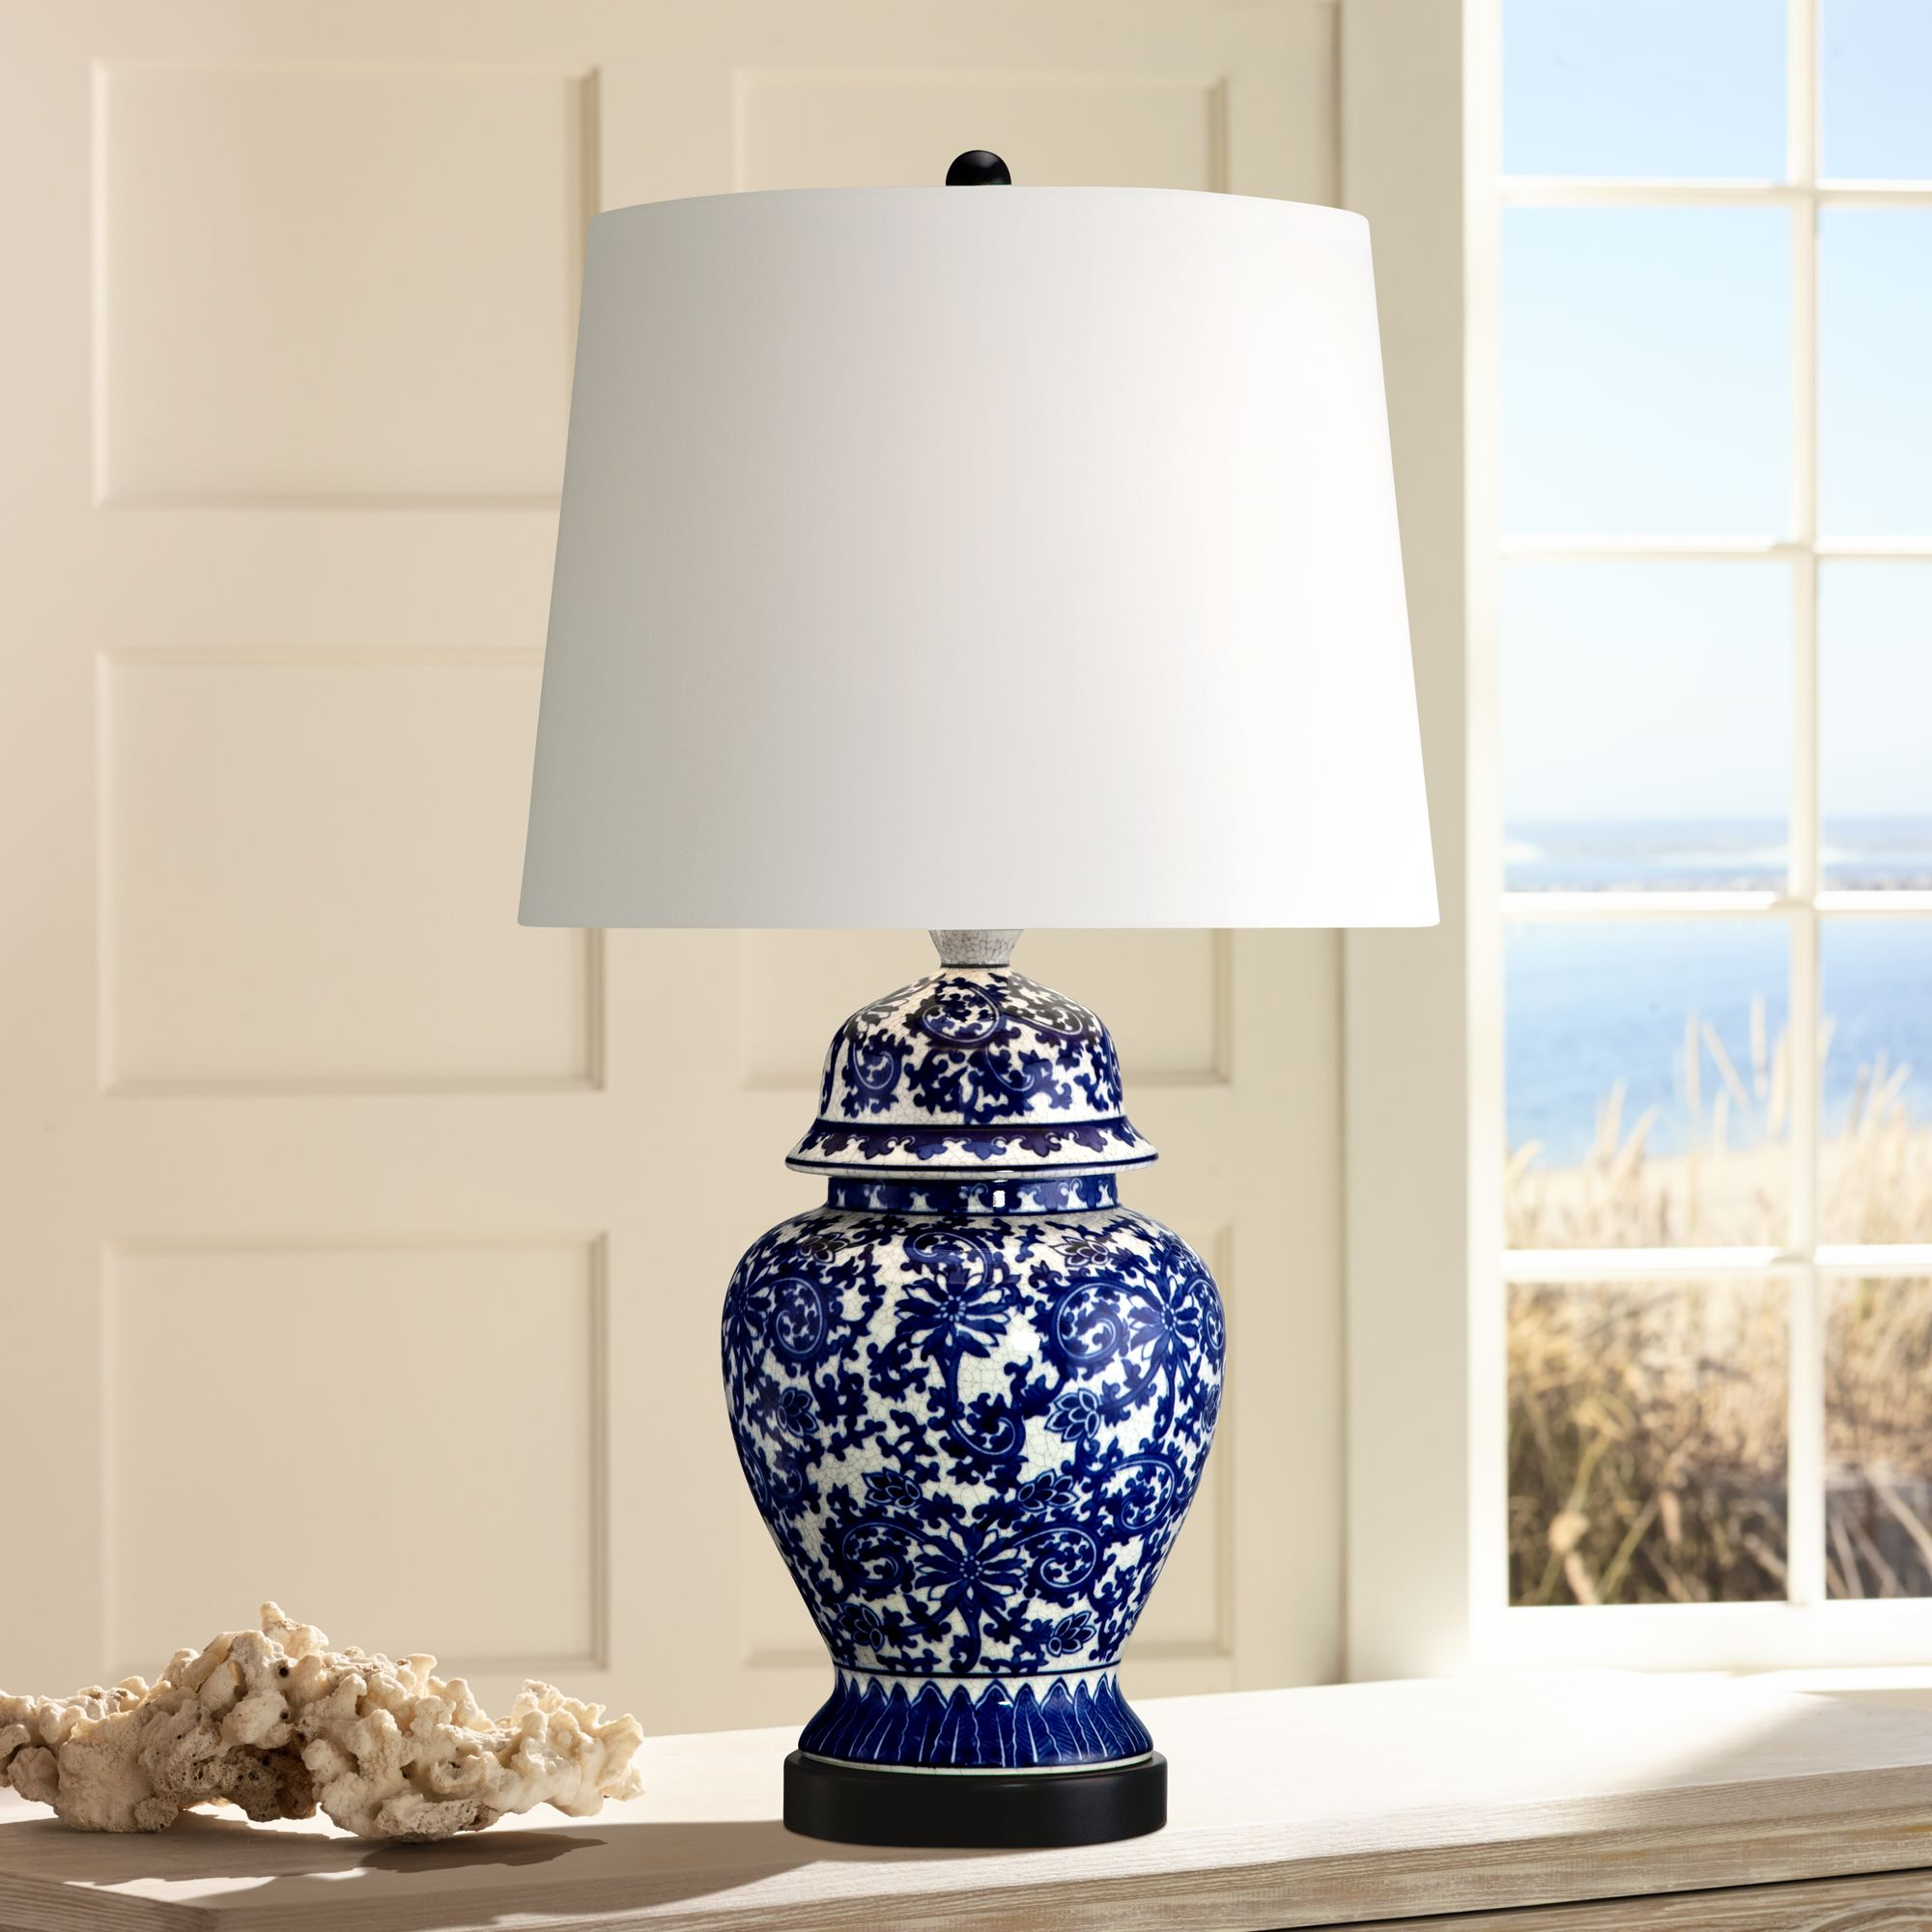 Blue and White Porcelain Temple Jar Table Lamp R2462 Lamps Plus